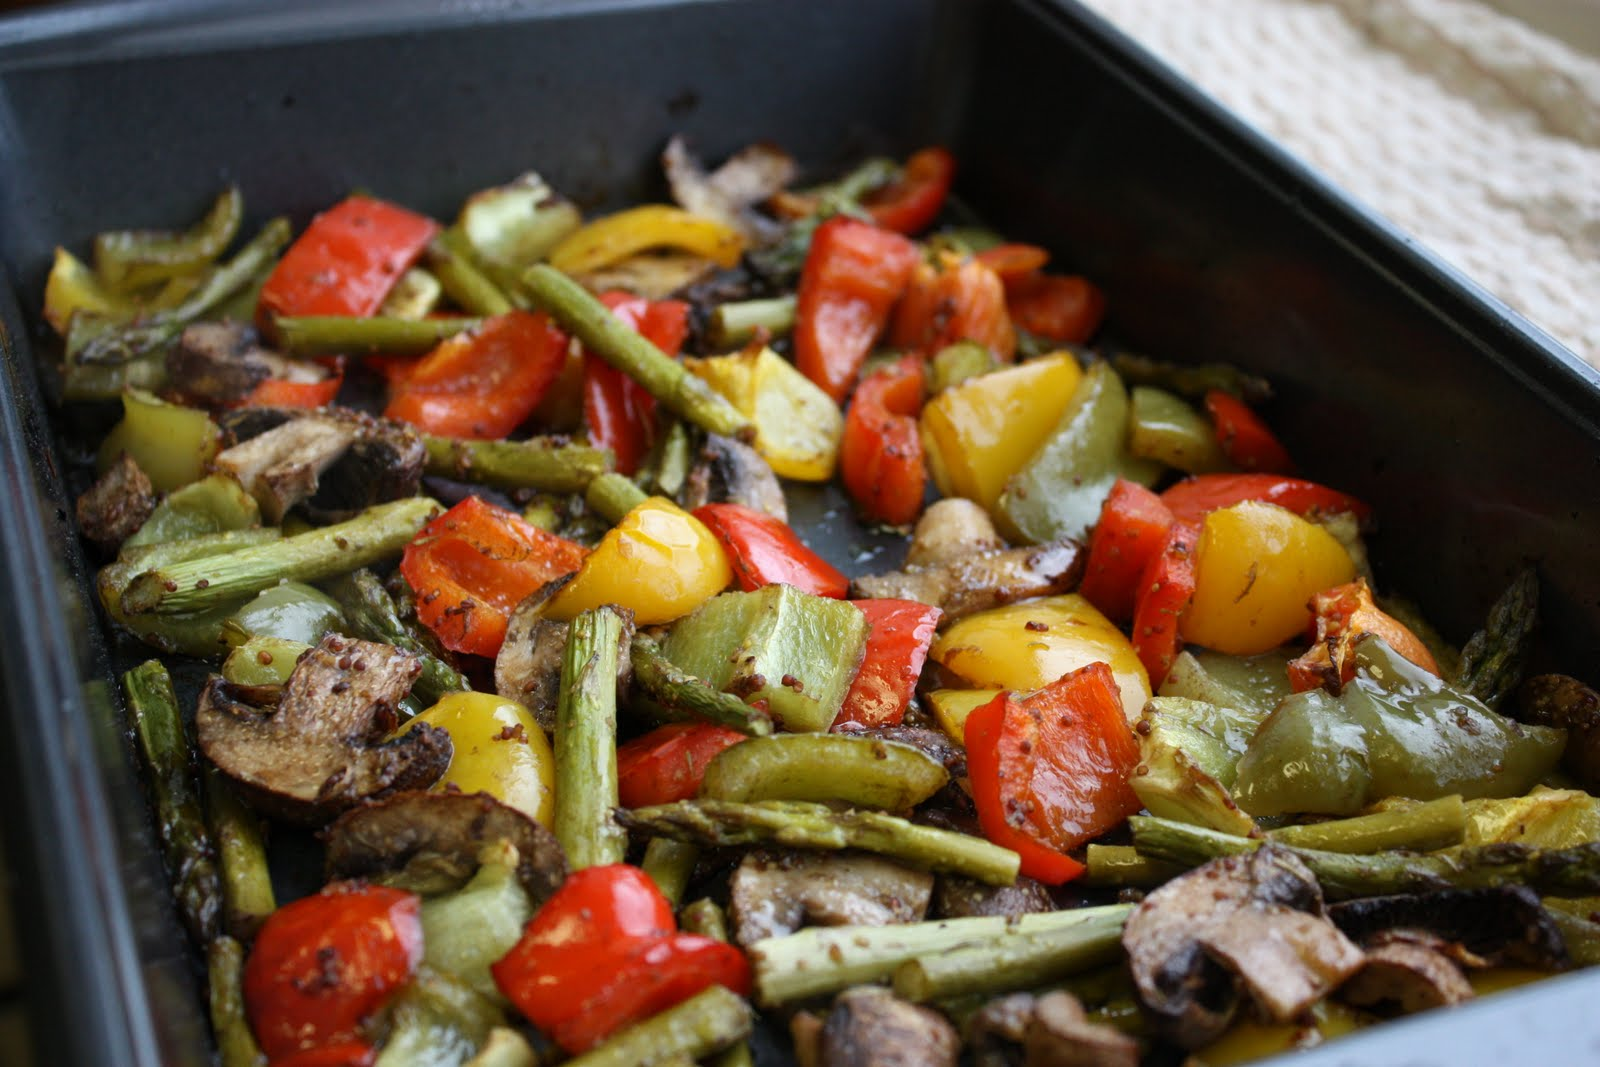 Balsamic-Dijon Roasted Vegetables - Get Off Your Tush and Cook!